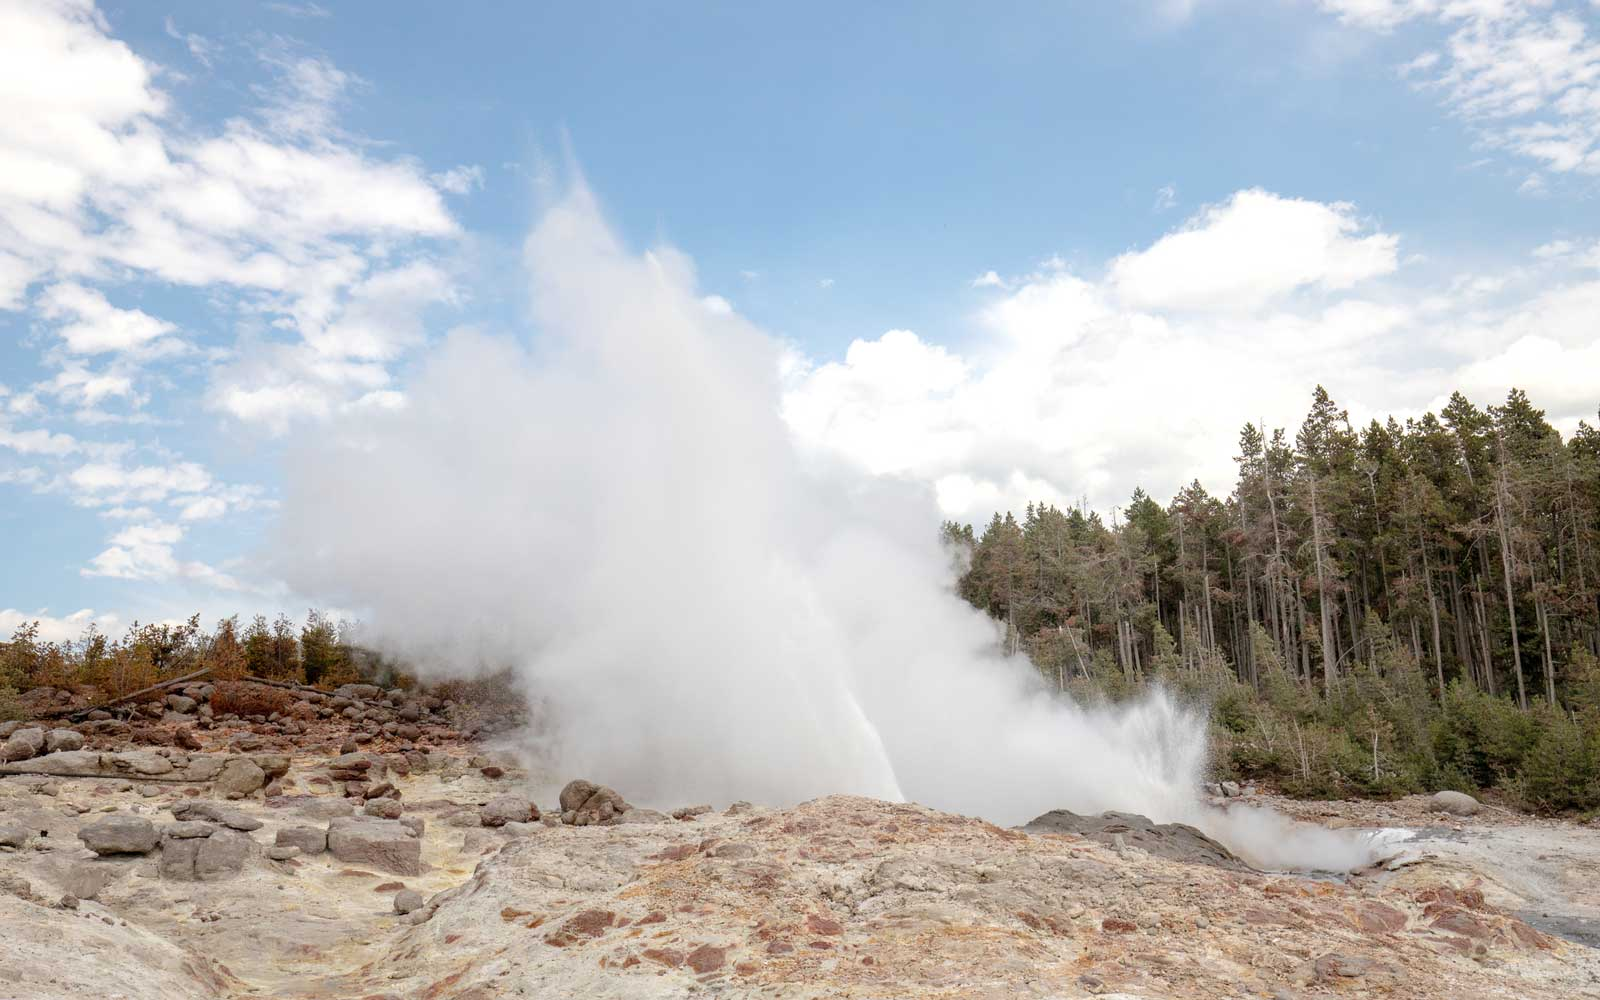 Steamboat geyser erupting in Yellowstone's Norris Geyser basin